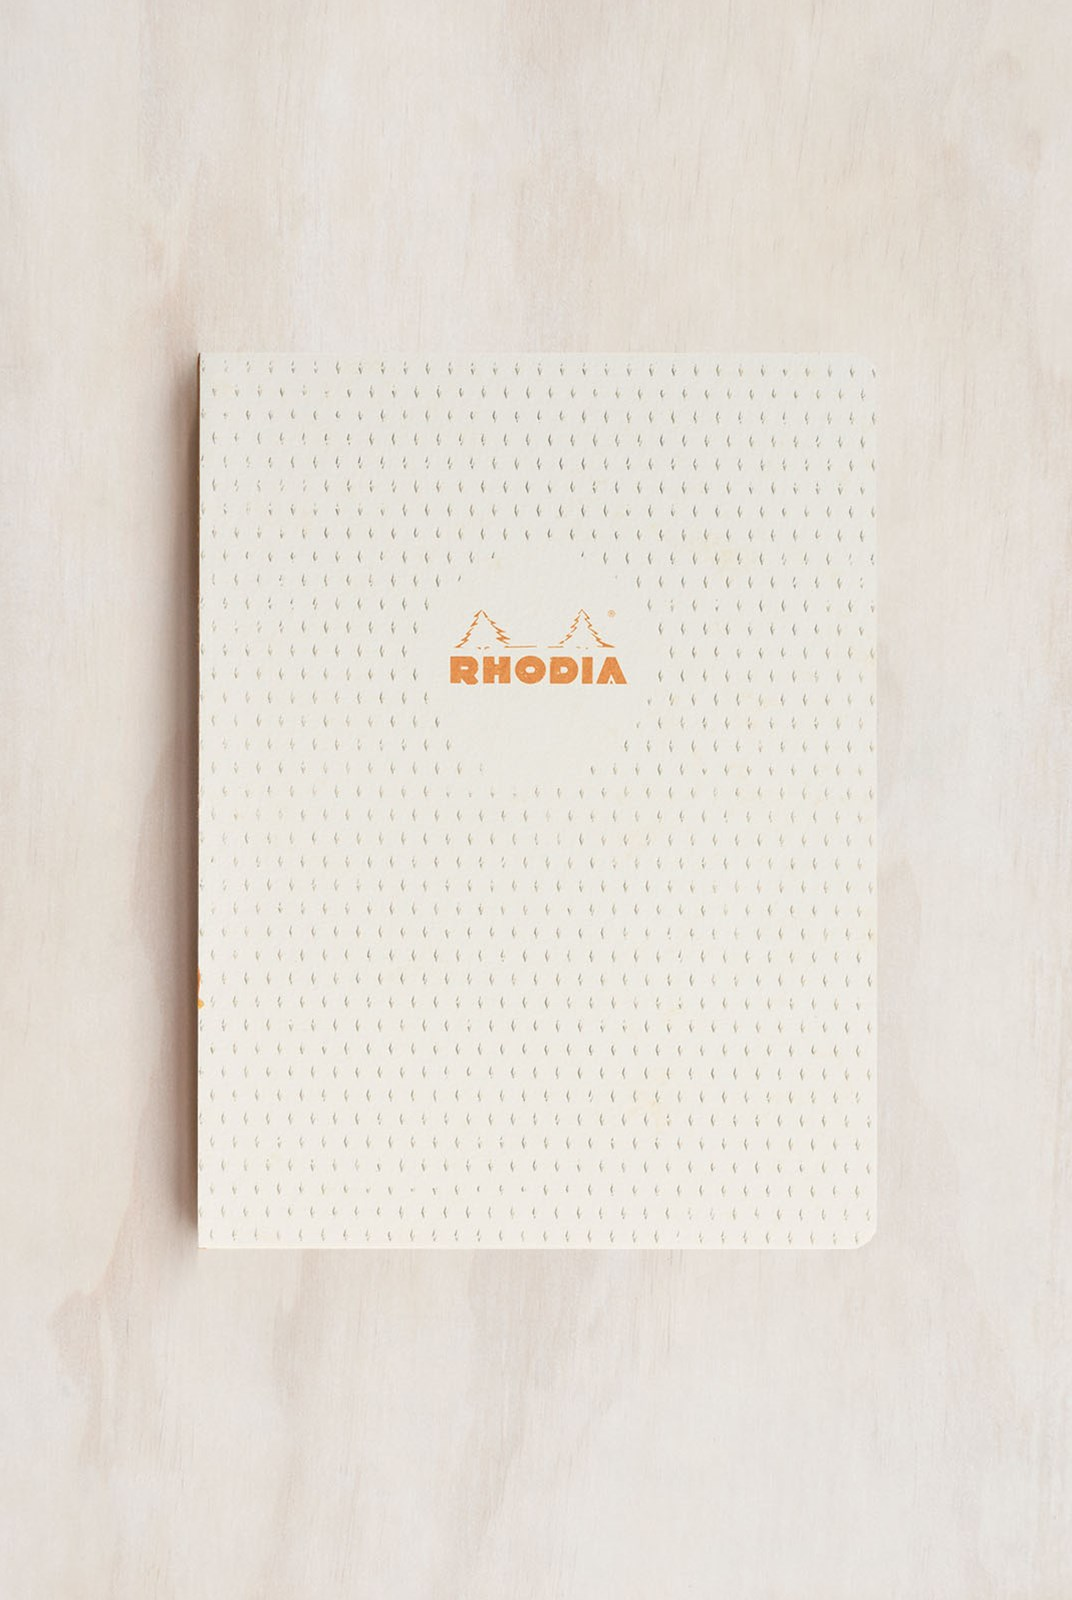 Rhodia - Heritage Notebook - Raw Bind - Grid - B5 - Moucheture White